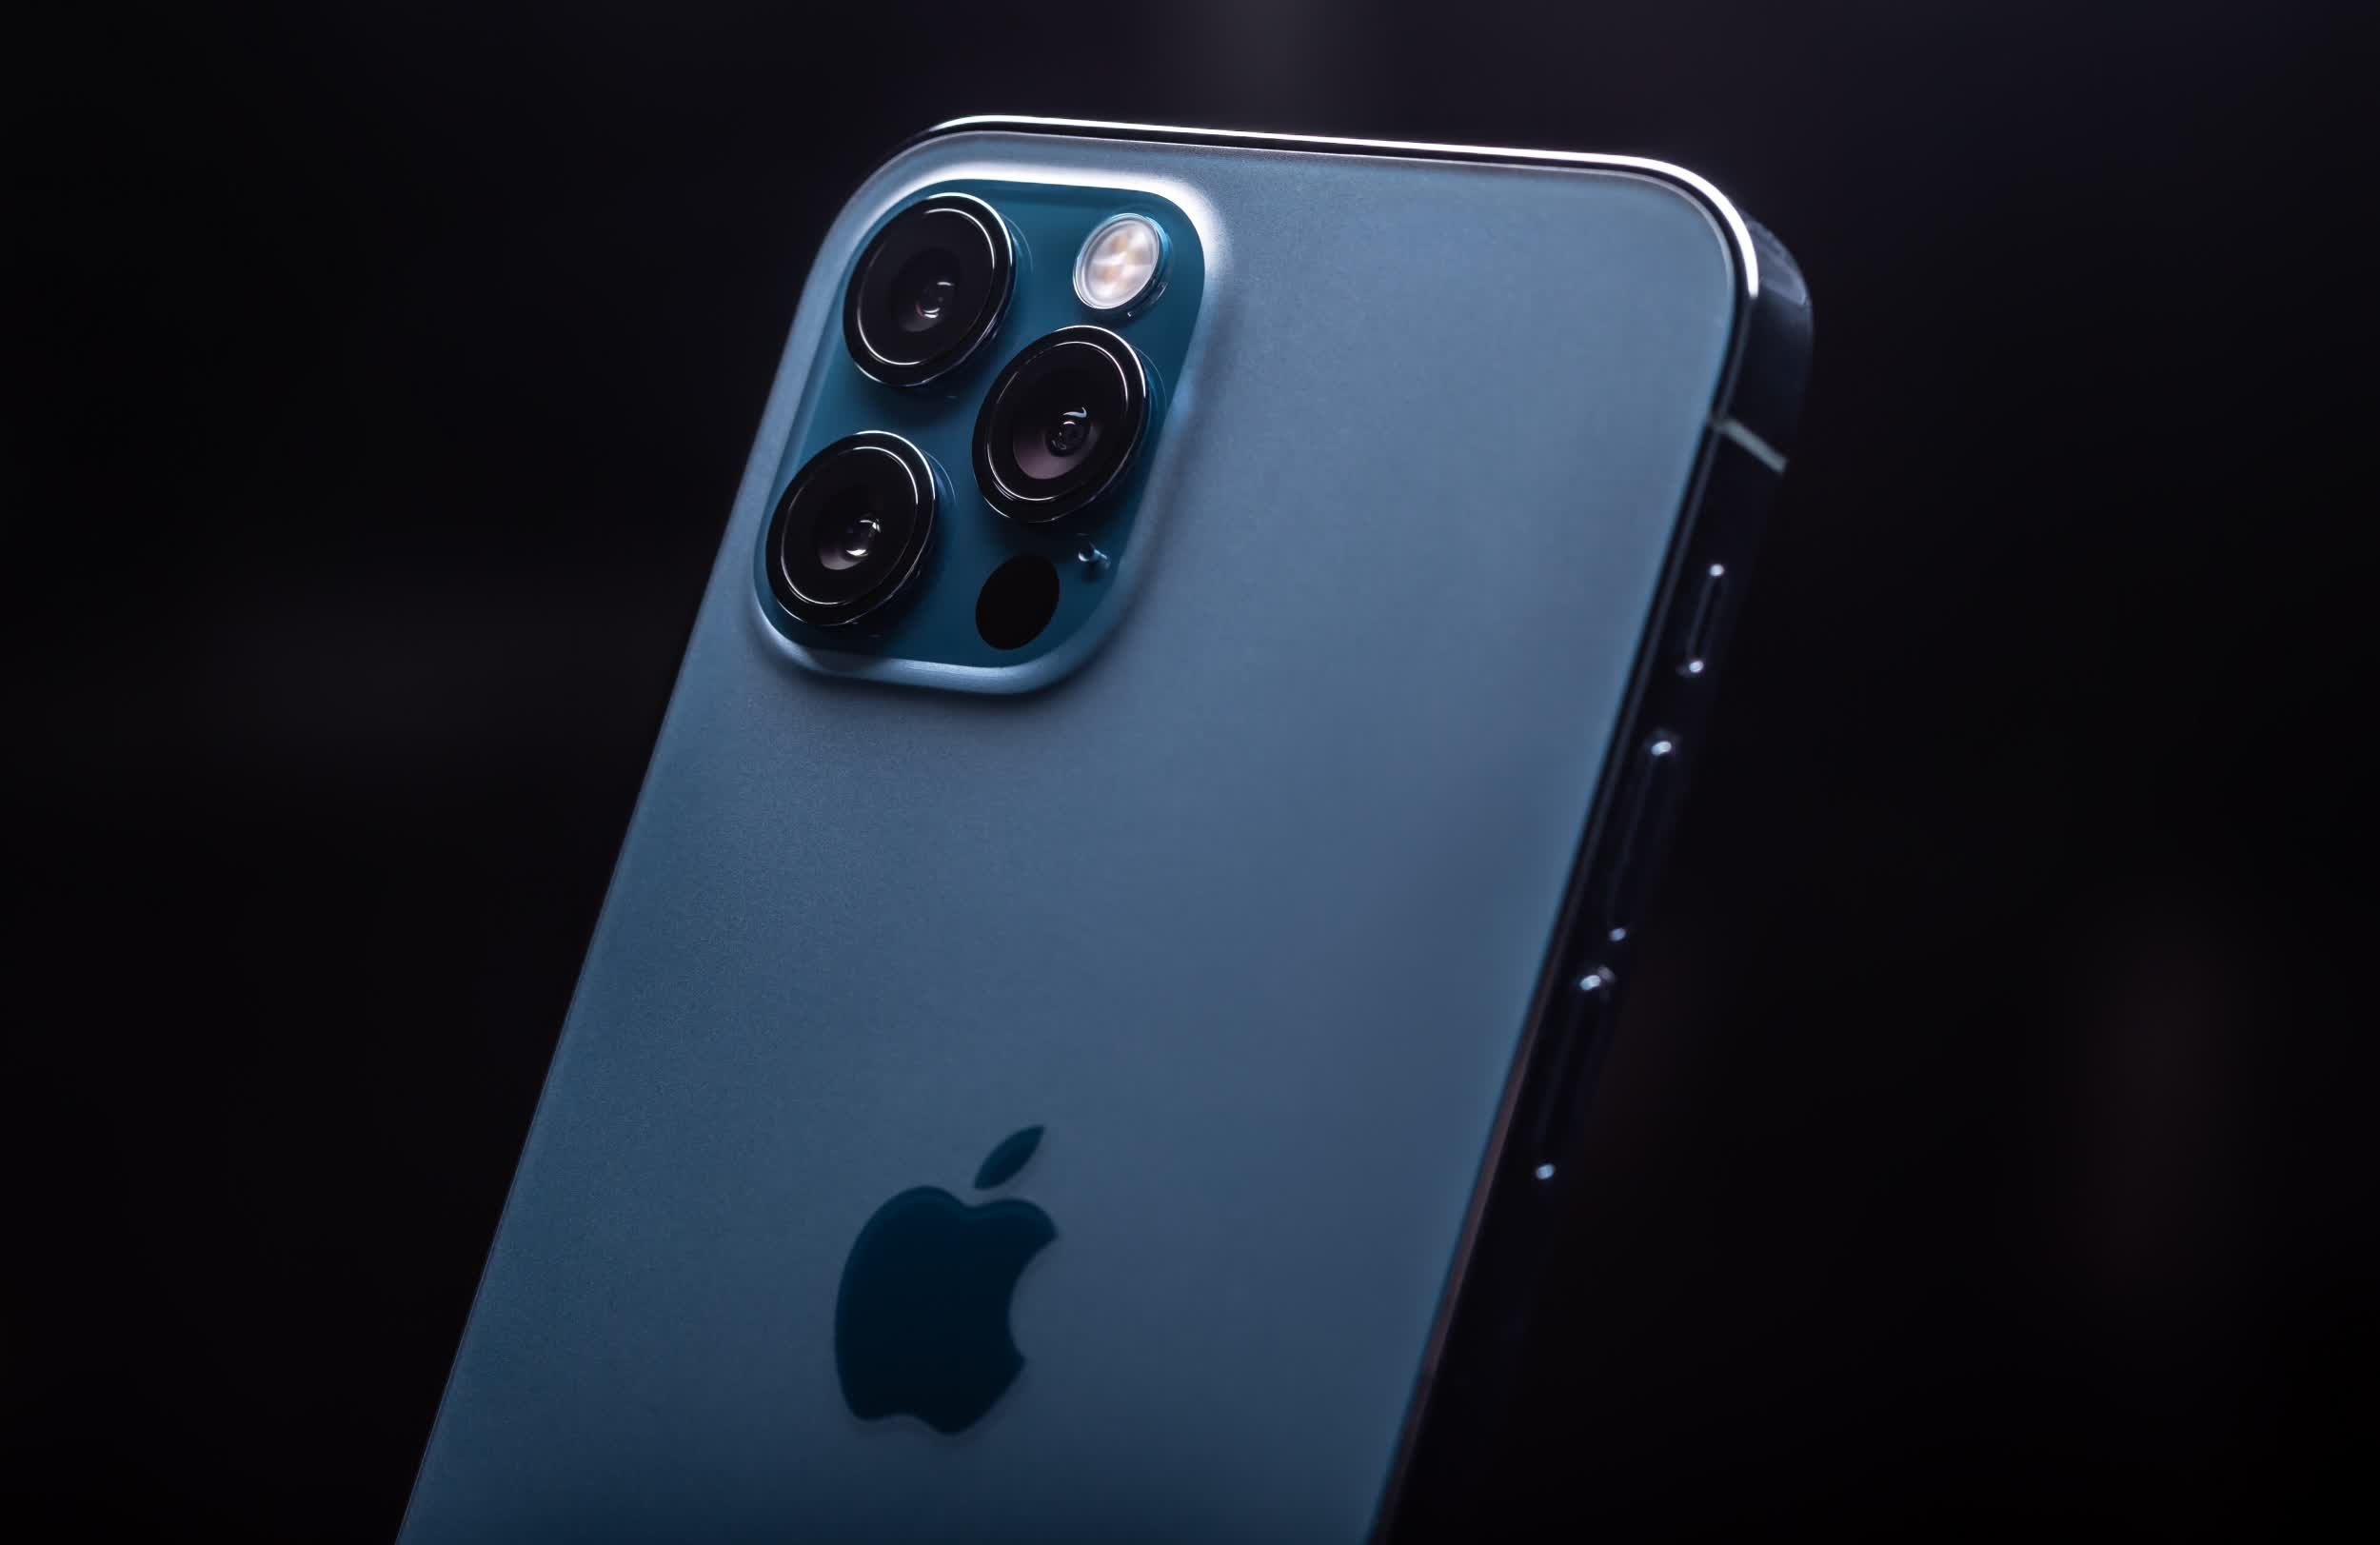 iPhone 12 series reached 100 million sales milestone two months faster than the iPhone 11